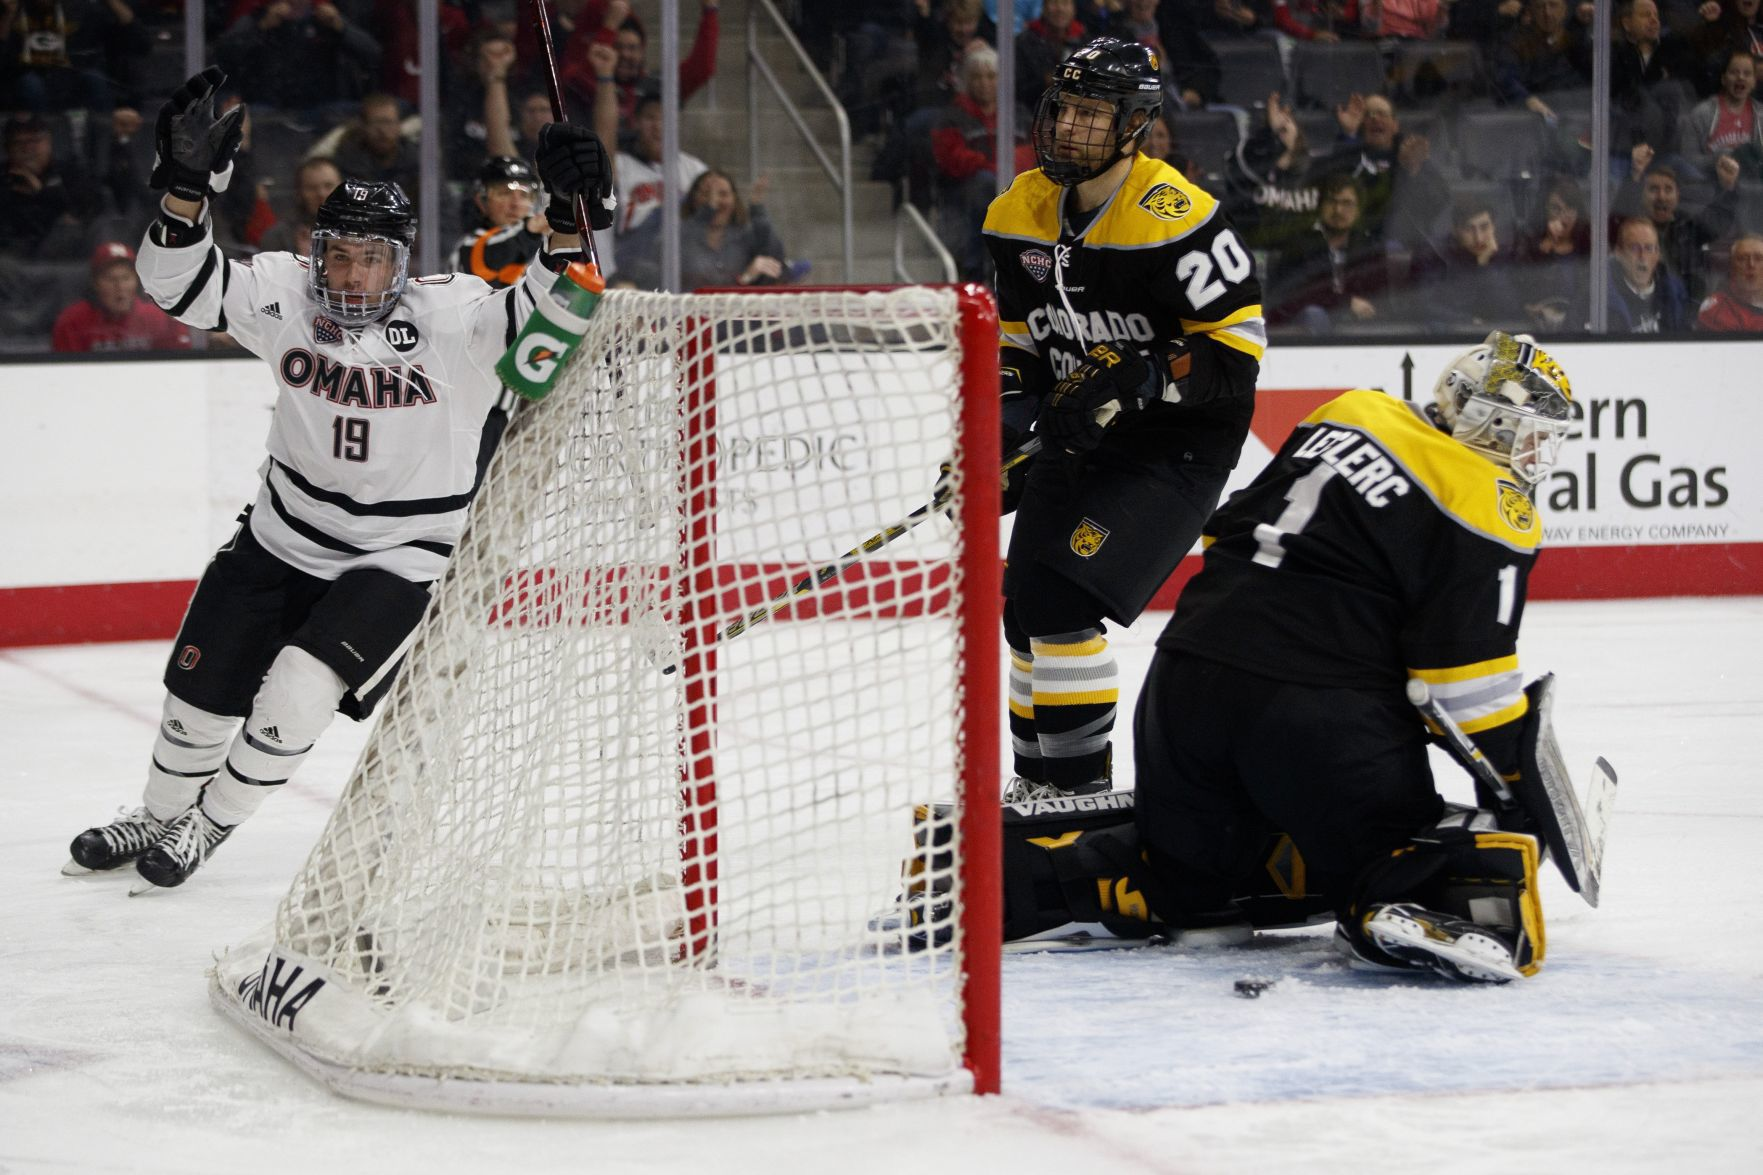 NCHC: After Honoring Former A.D. Don Leahy Pregame, No. 14 UNO Defeats Colorado College